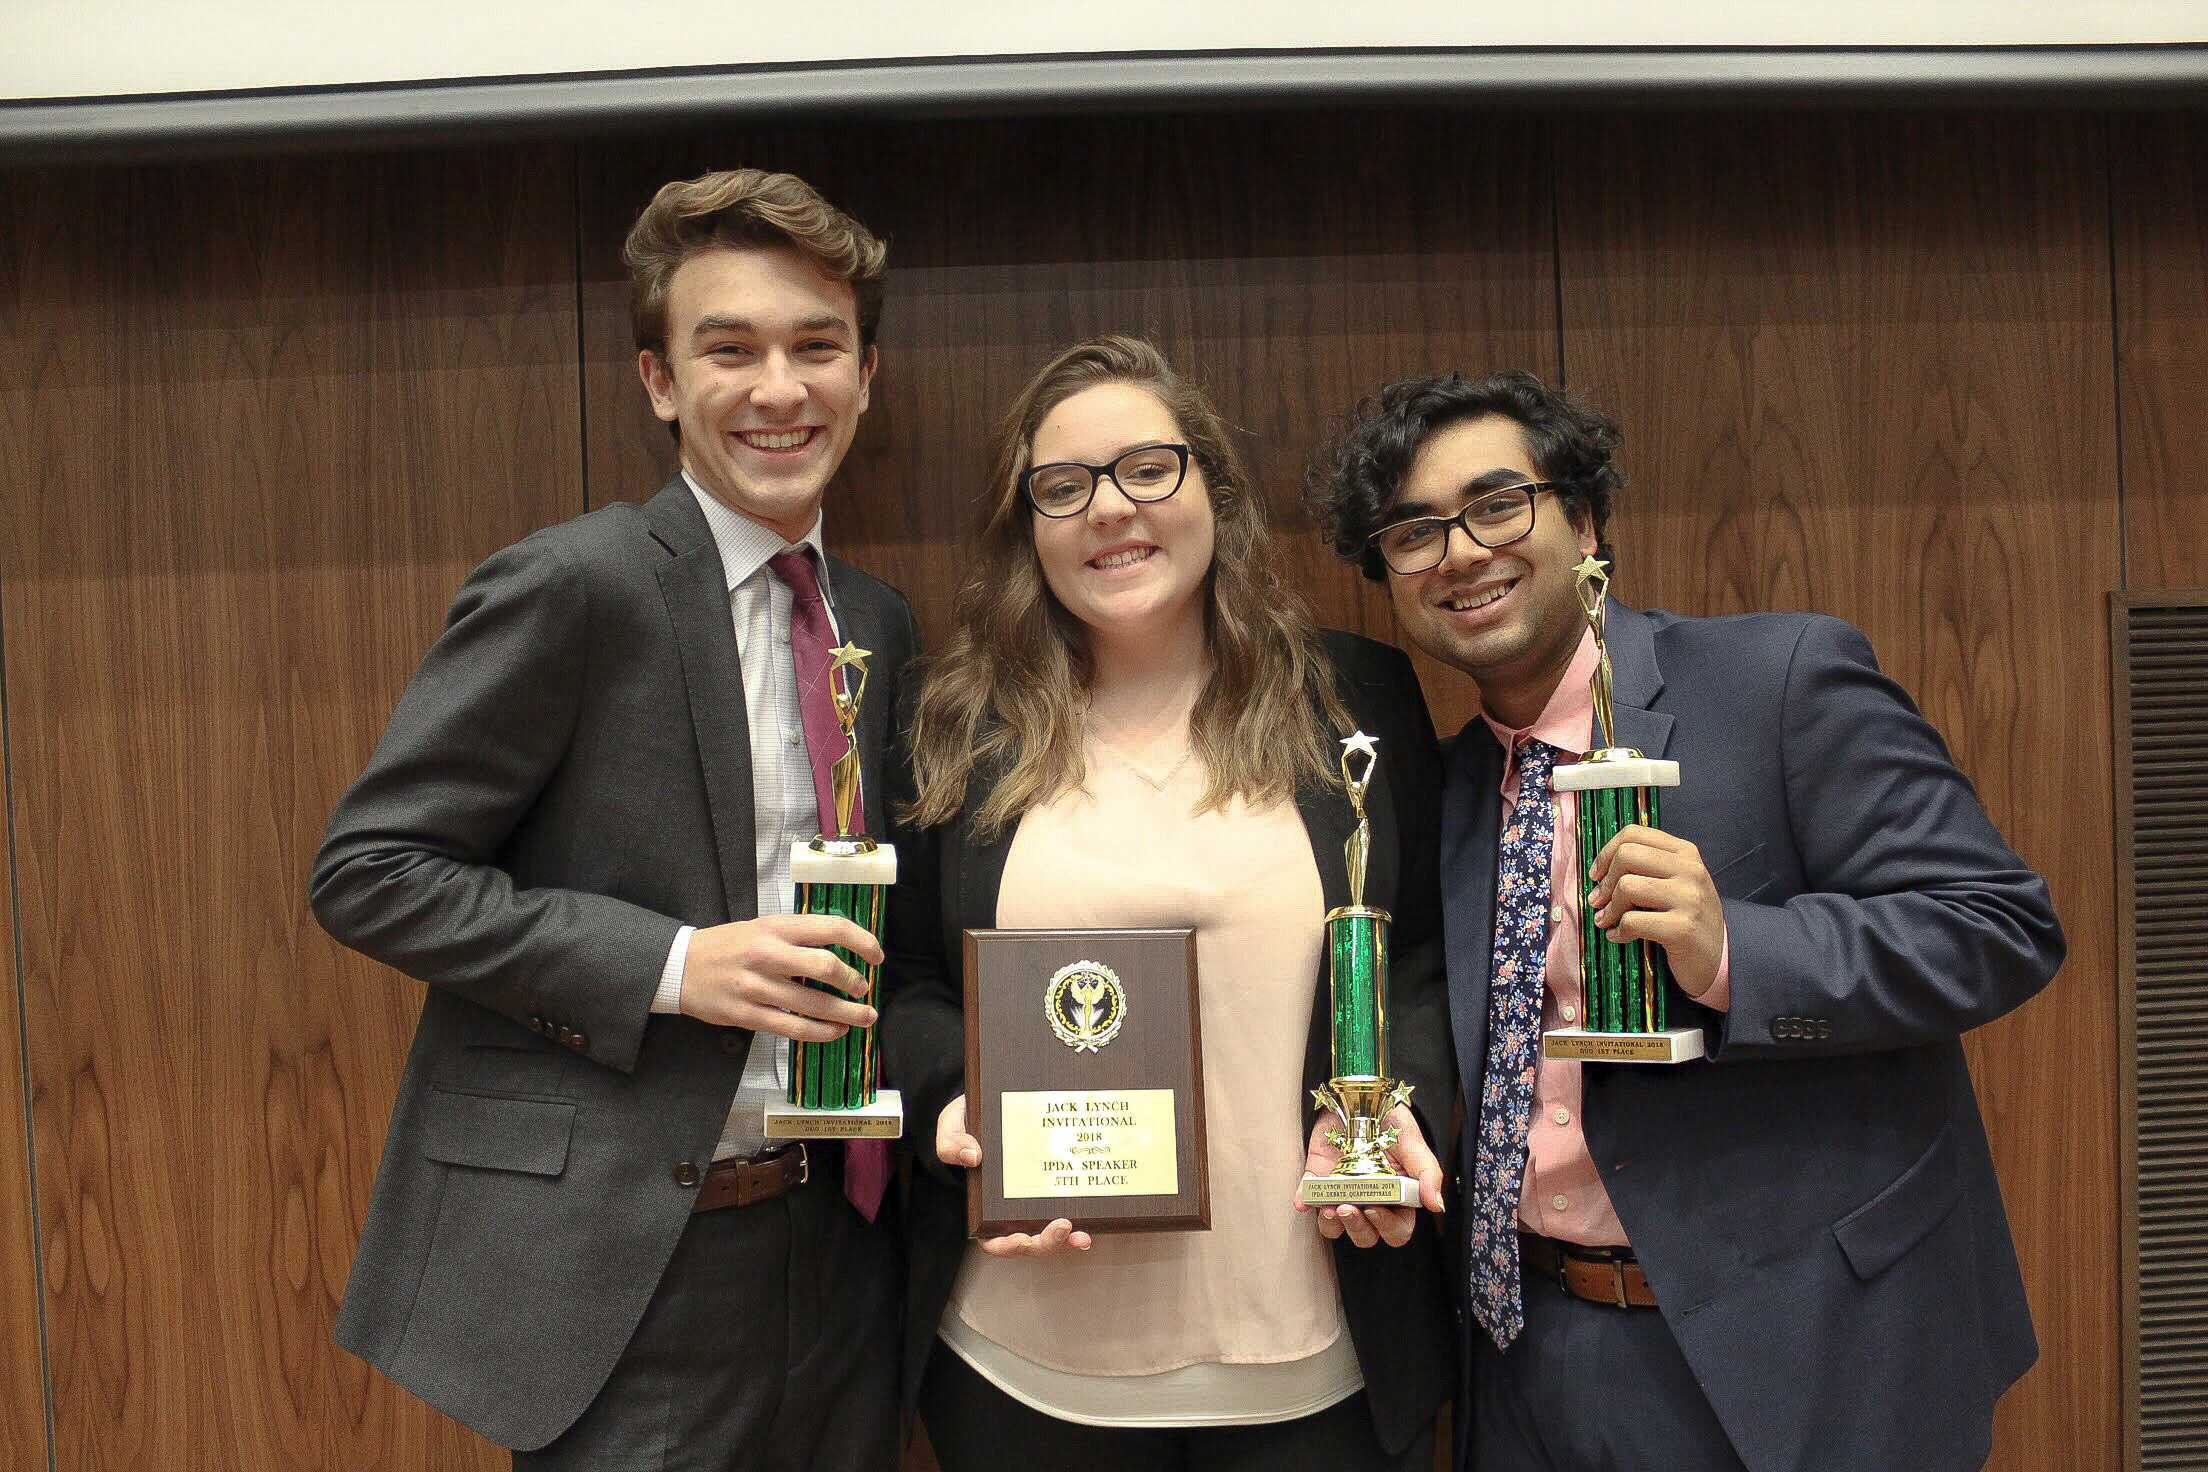 Freshman William Rowley, Sara Hathaway, and Karthik Ramaswami all placed in the debate competition. • Courtesy of Sara Hathaway.